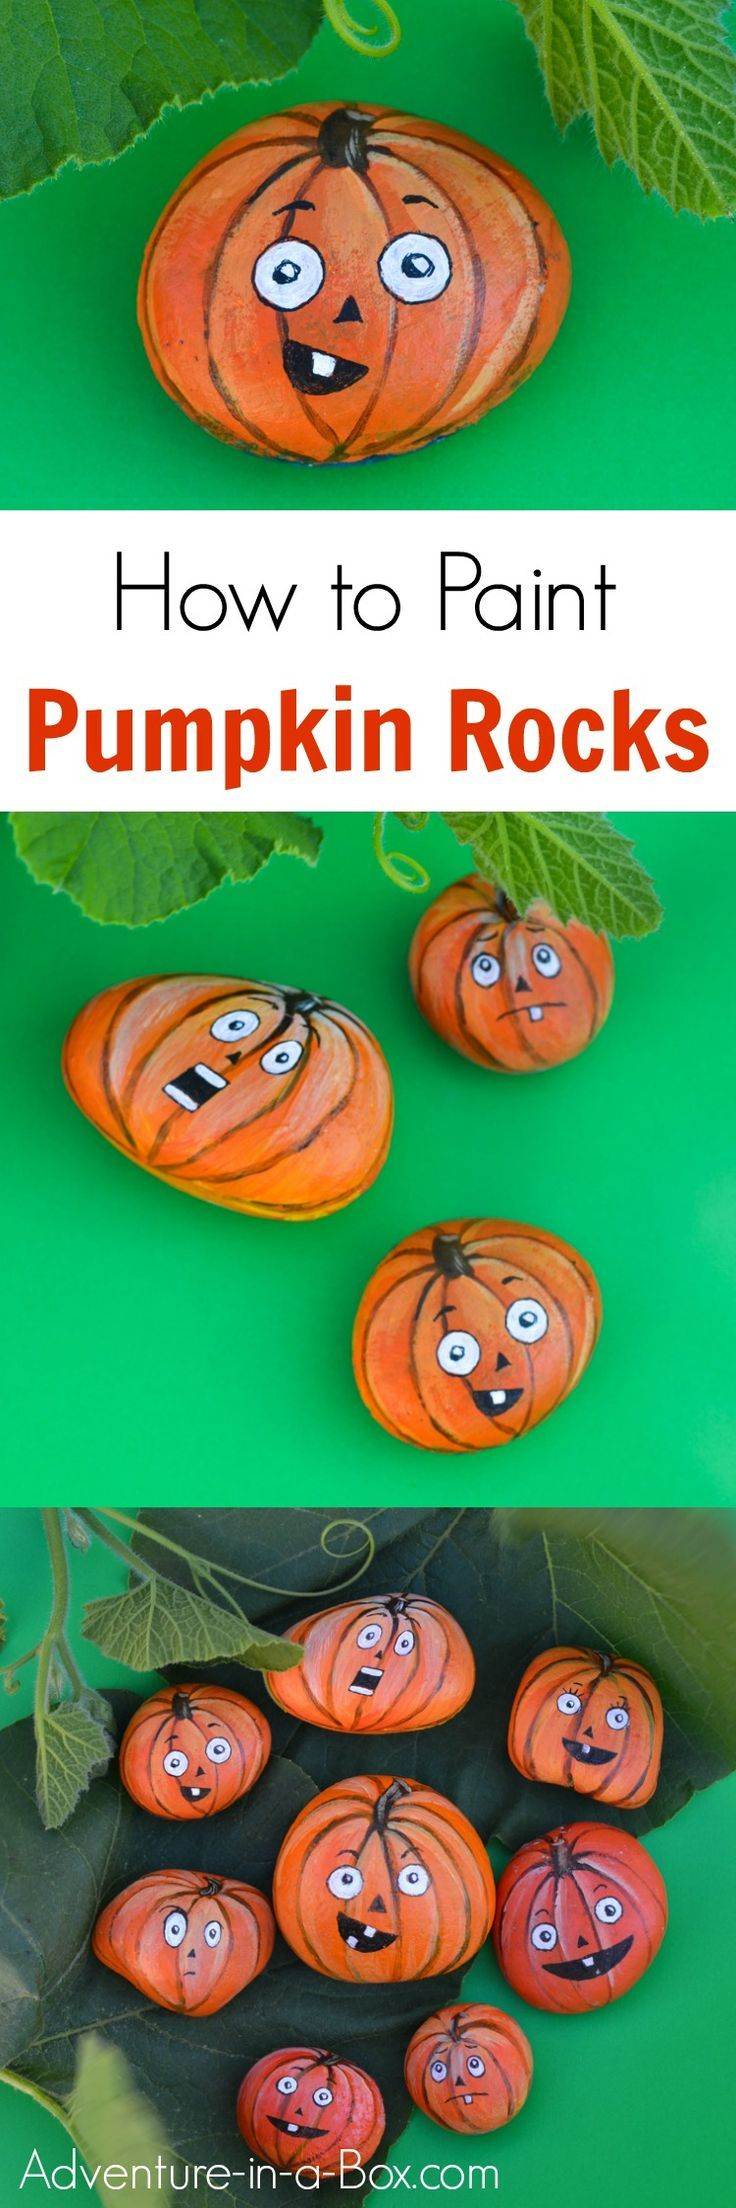 If you like painting rocks, here is a fun autumn craft for you and the kids - turn rocks into jack-o-lantern pumpkins! Also great for Halloween decorations.